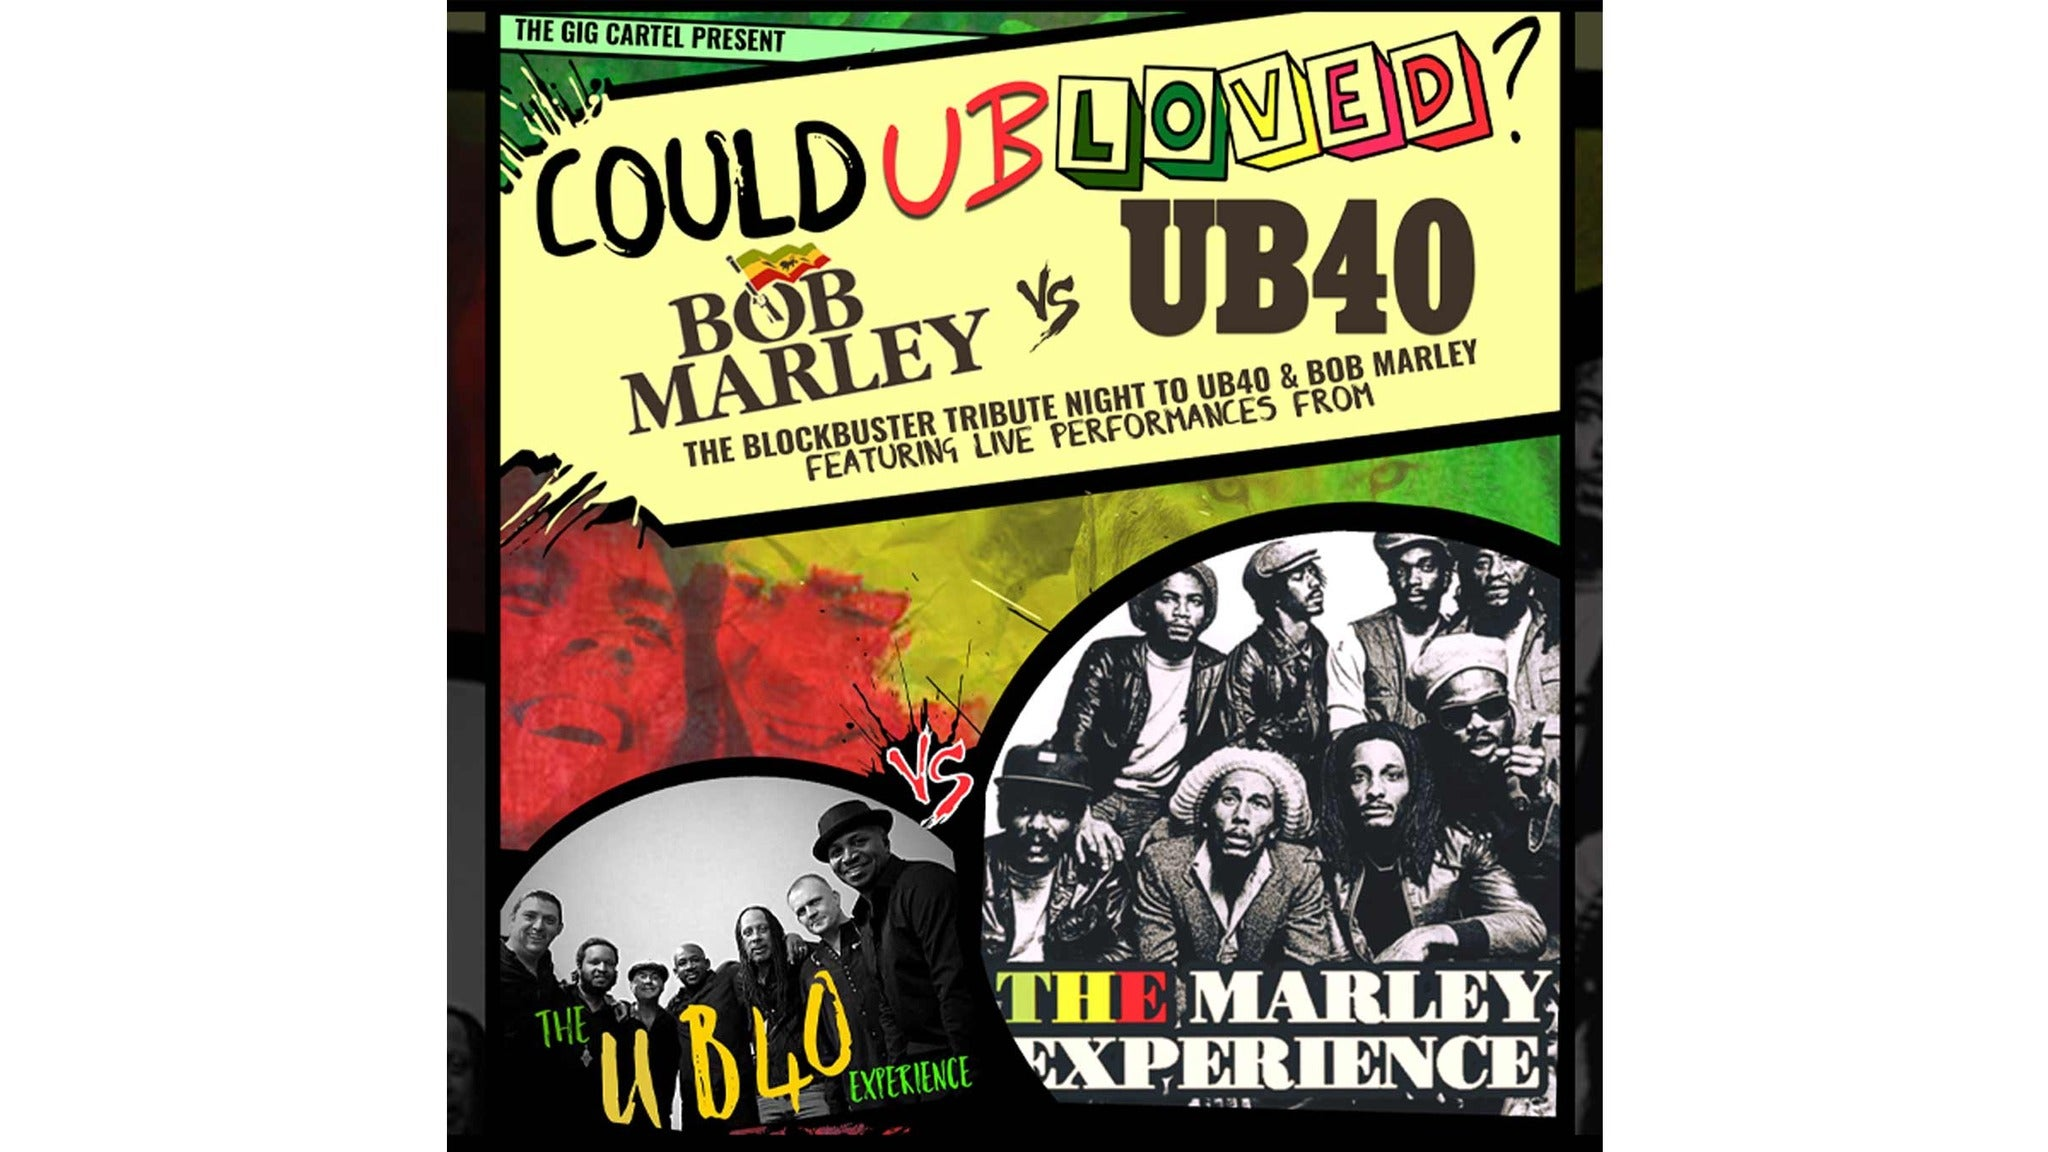 The Marley Experience The Ub40 Experience tickets (Copyright © Ticketmaster)